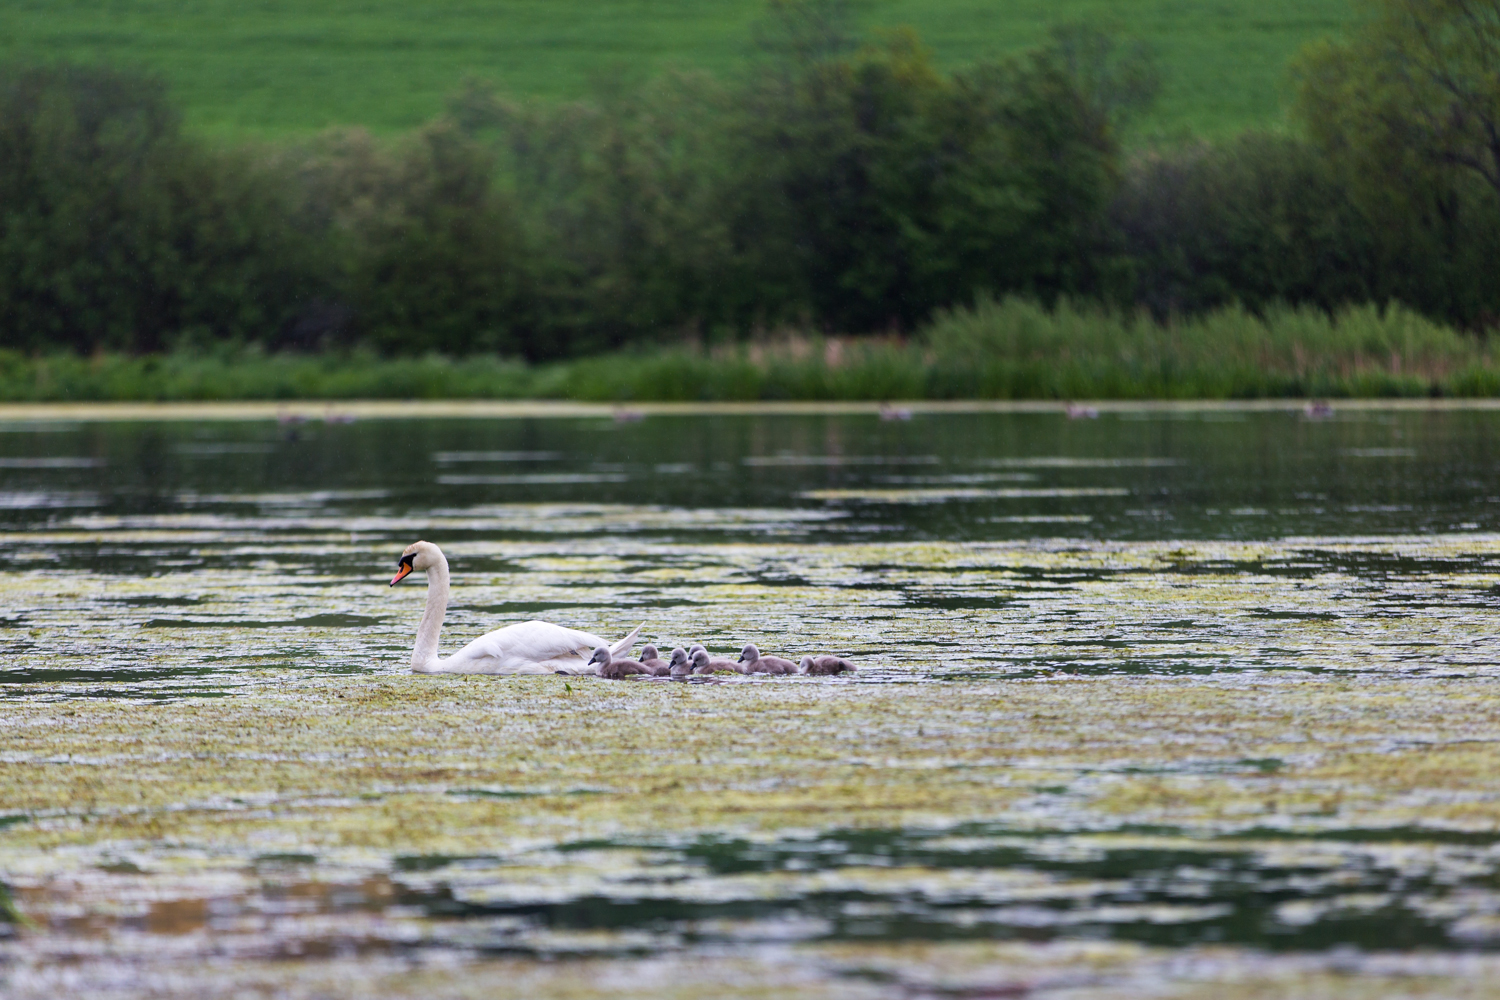 A mother swan and her cygnets